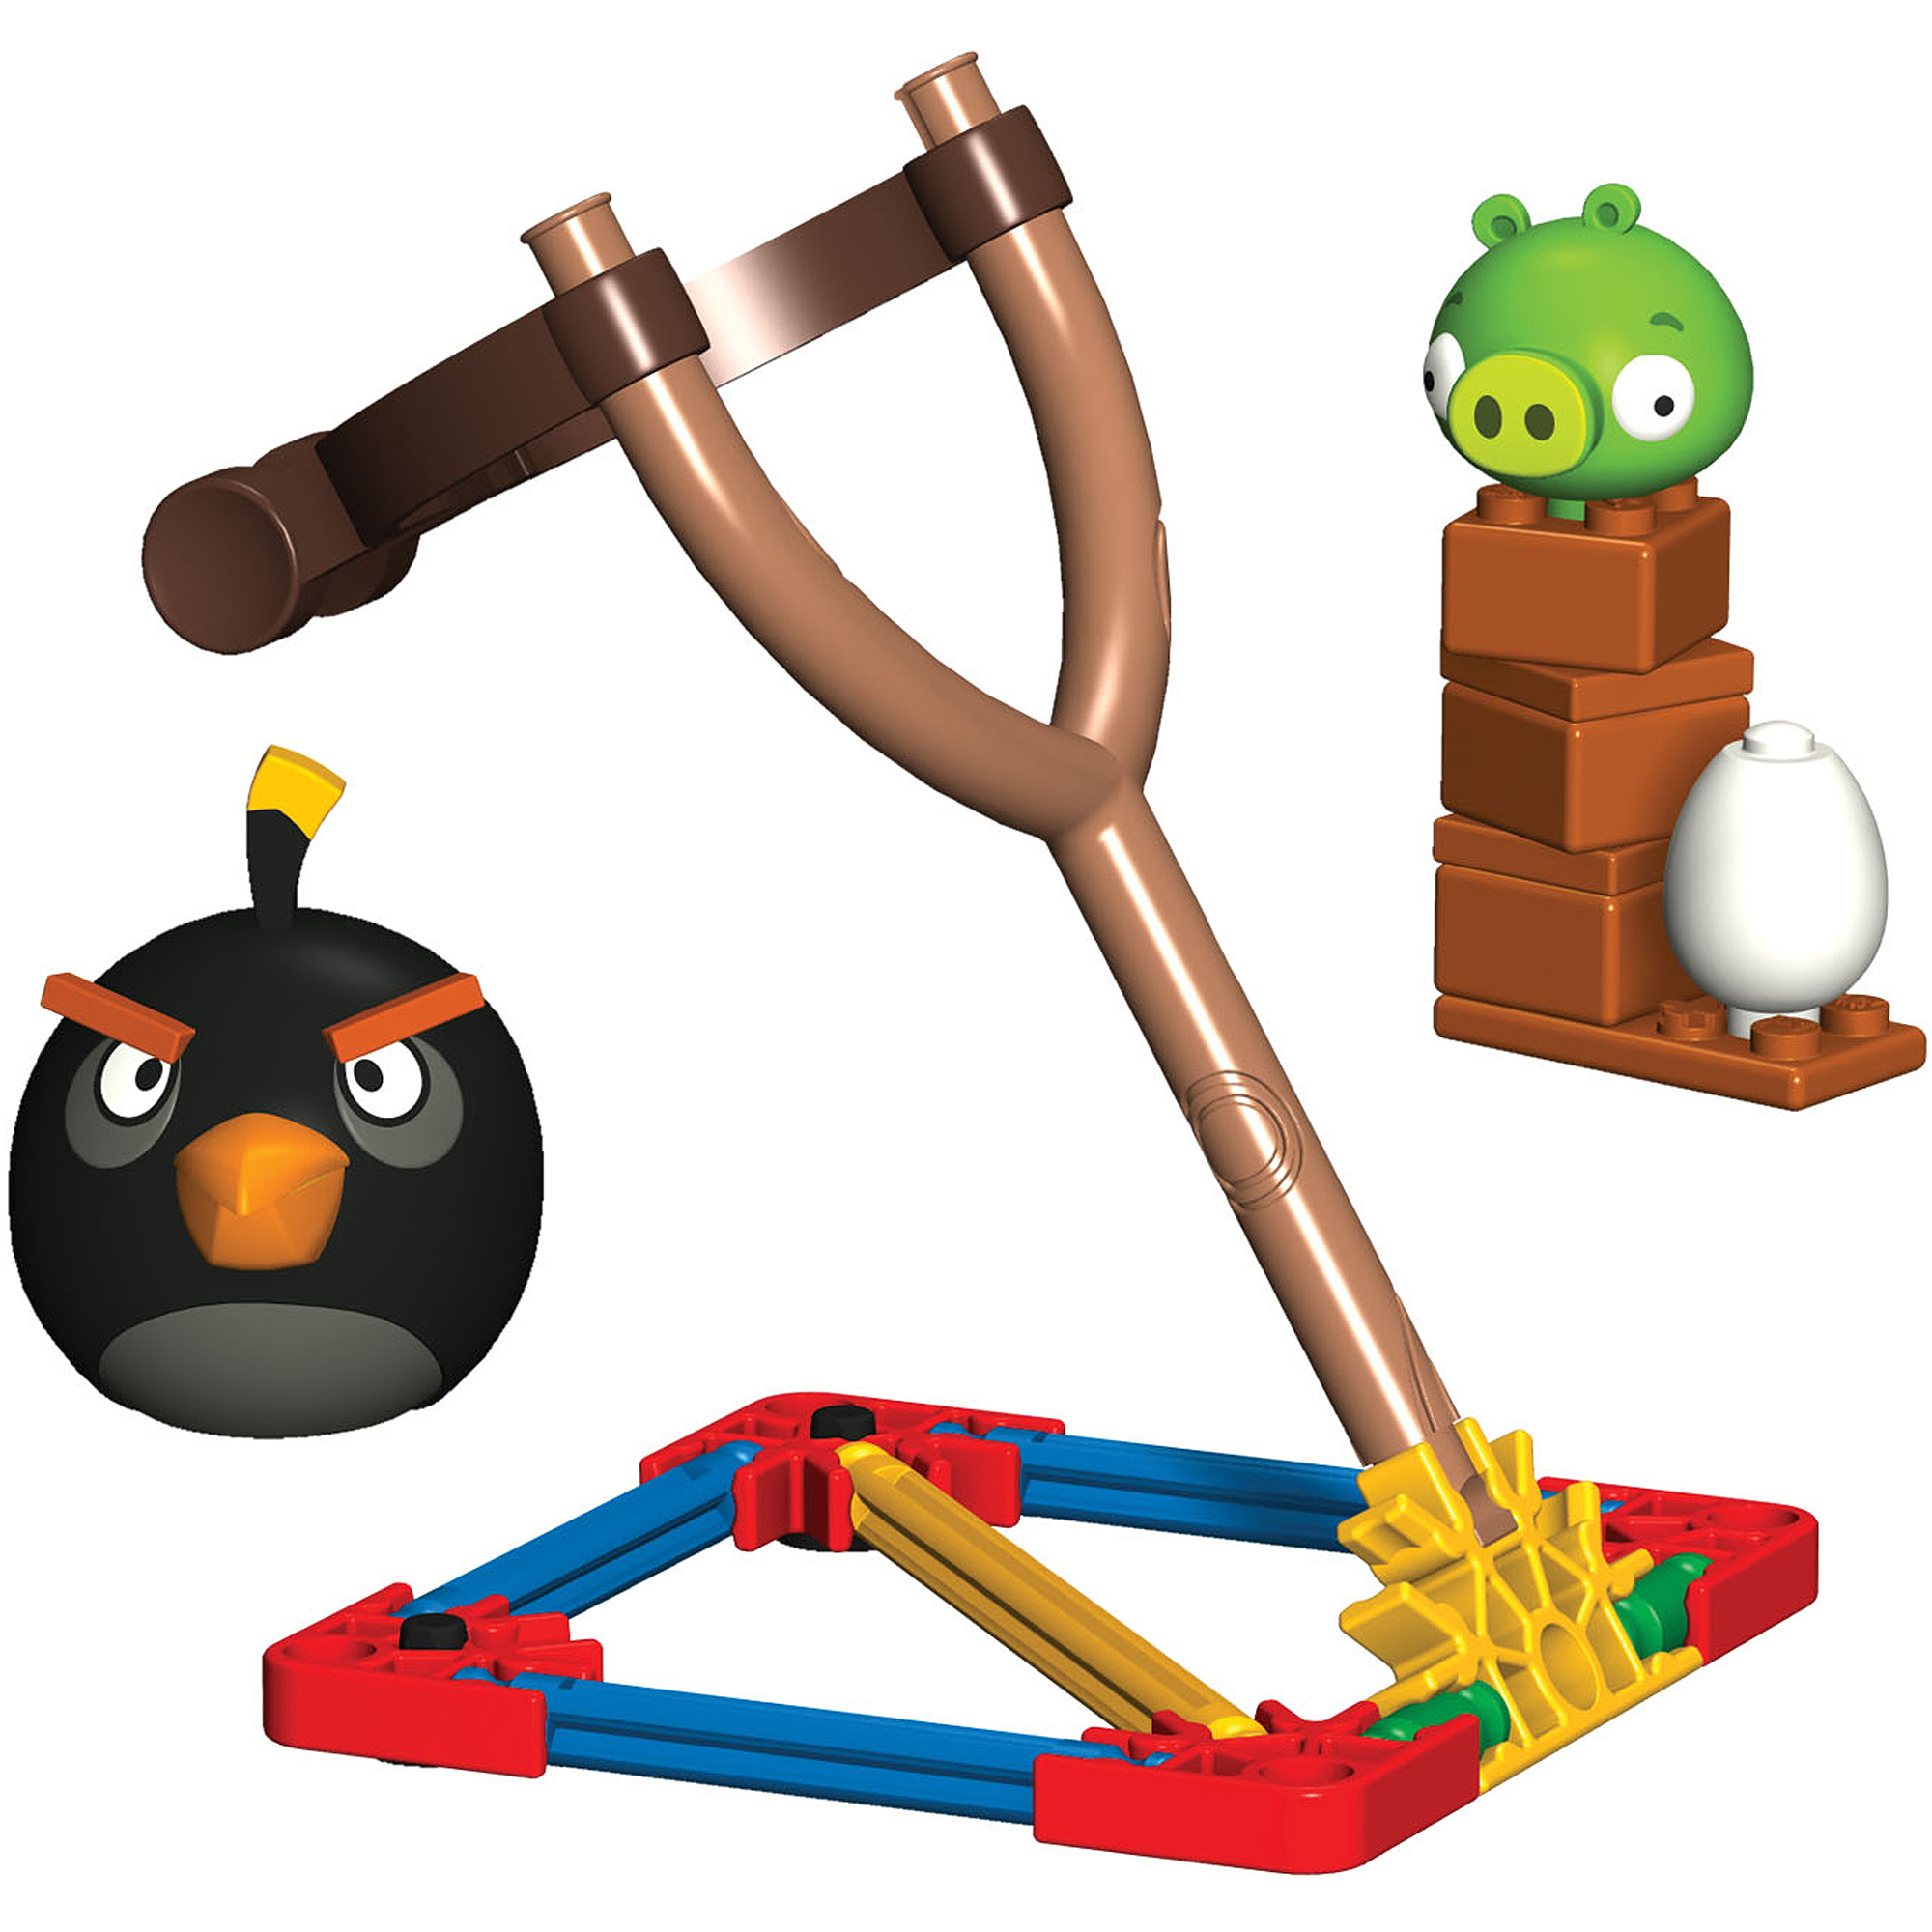 K'NEX Angry Birds Intro Building Set: Black Bird vs. Small Minion Pig